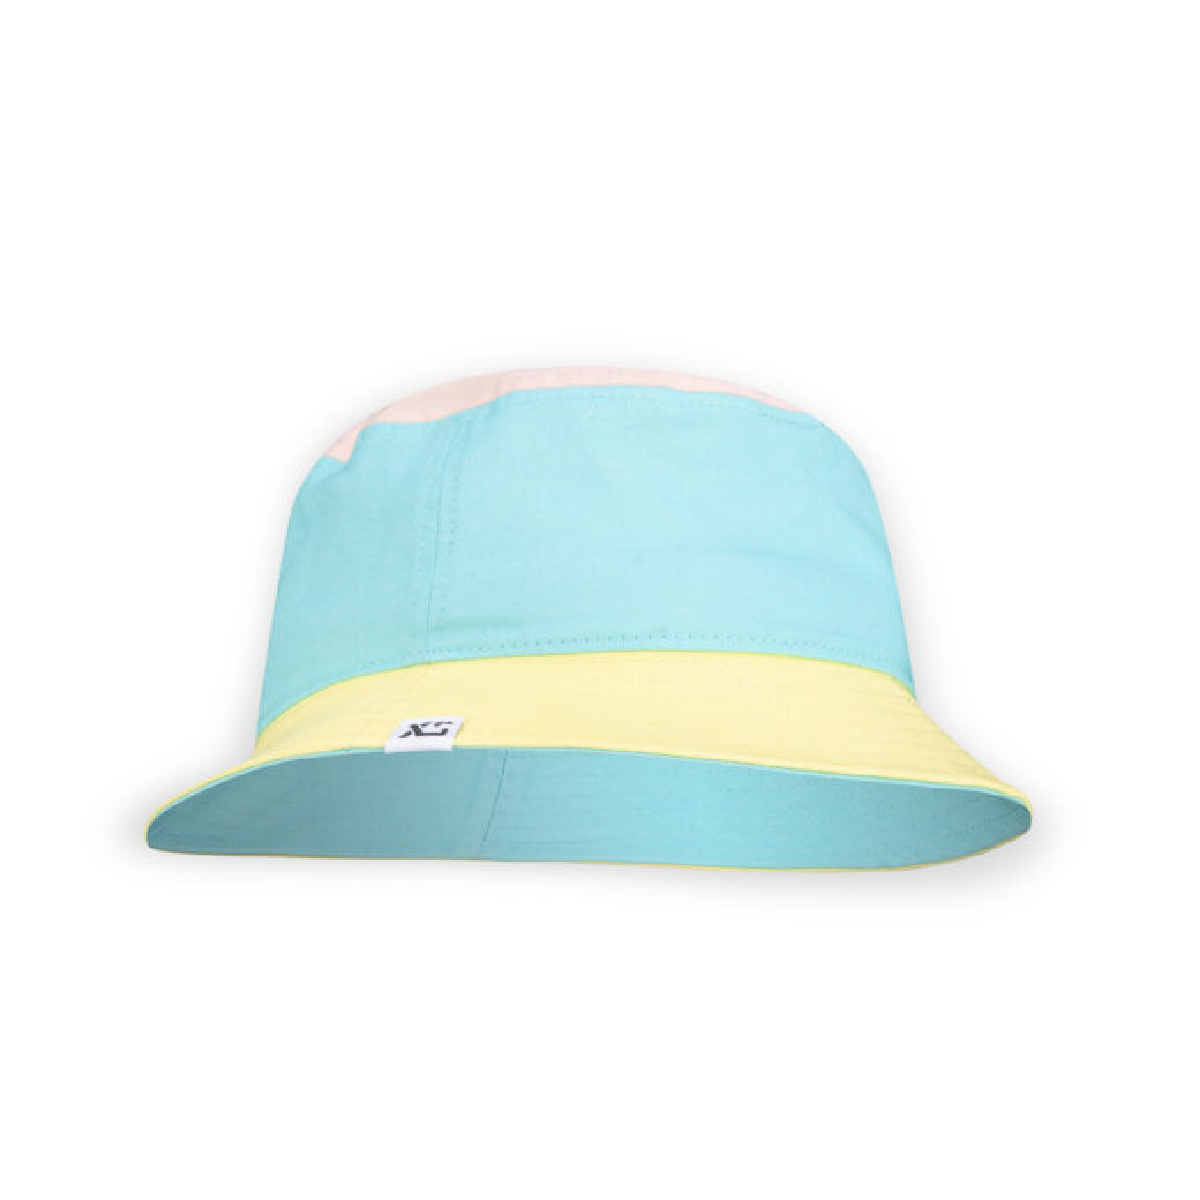 XS Unified XS Unified Kids Bucket Hat Pastel Colourblock